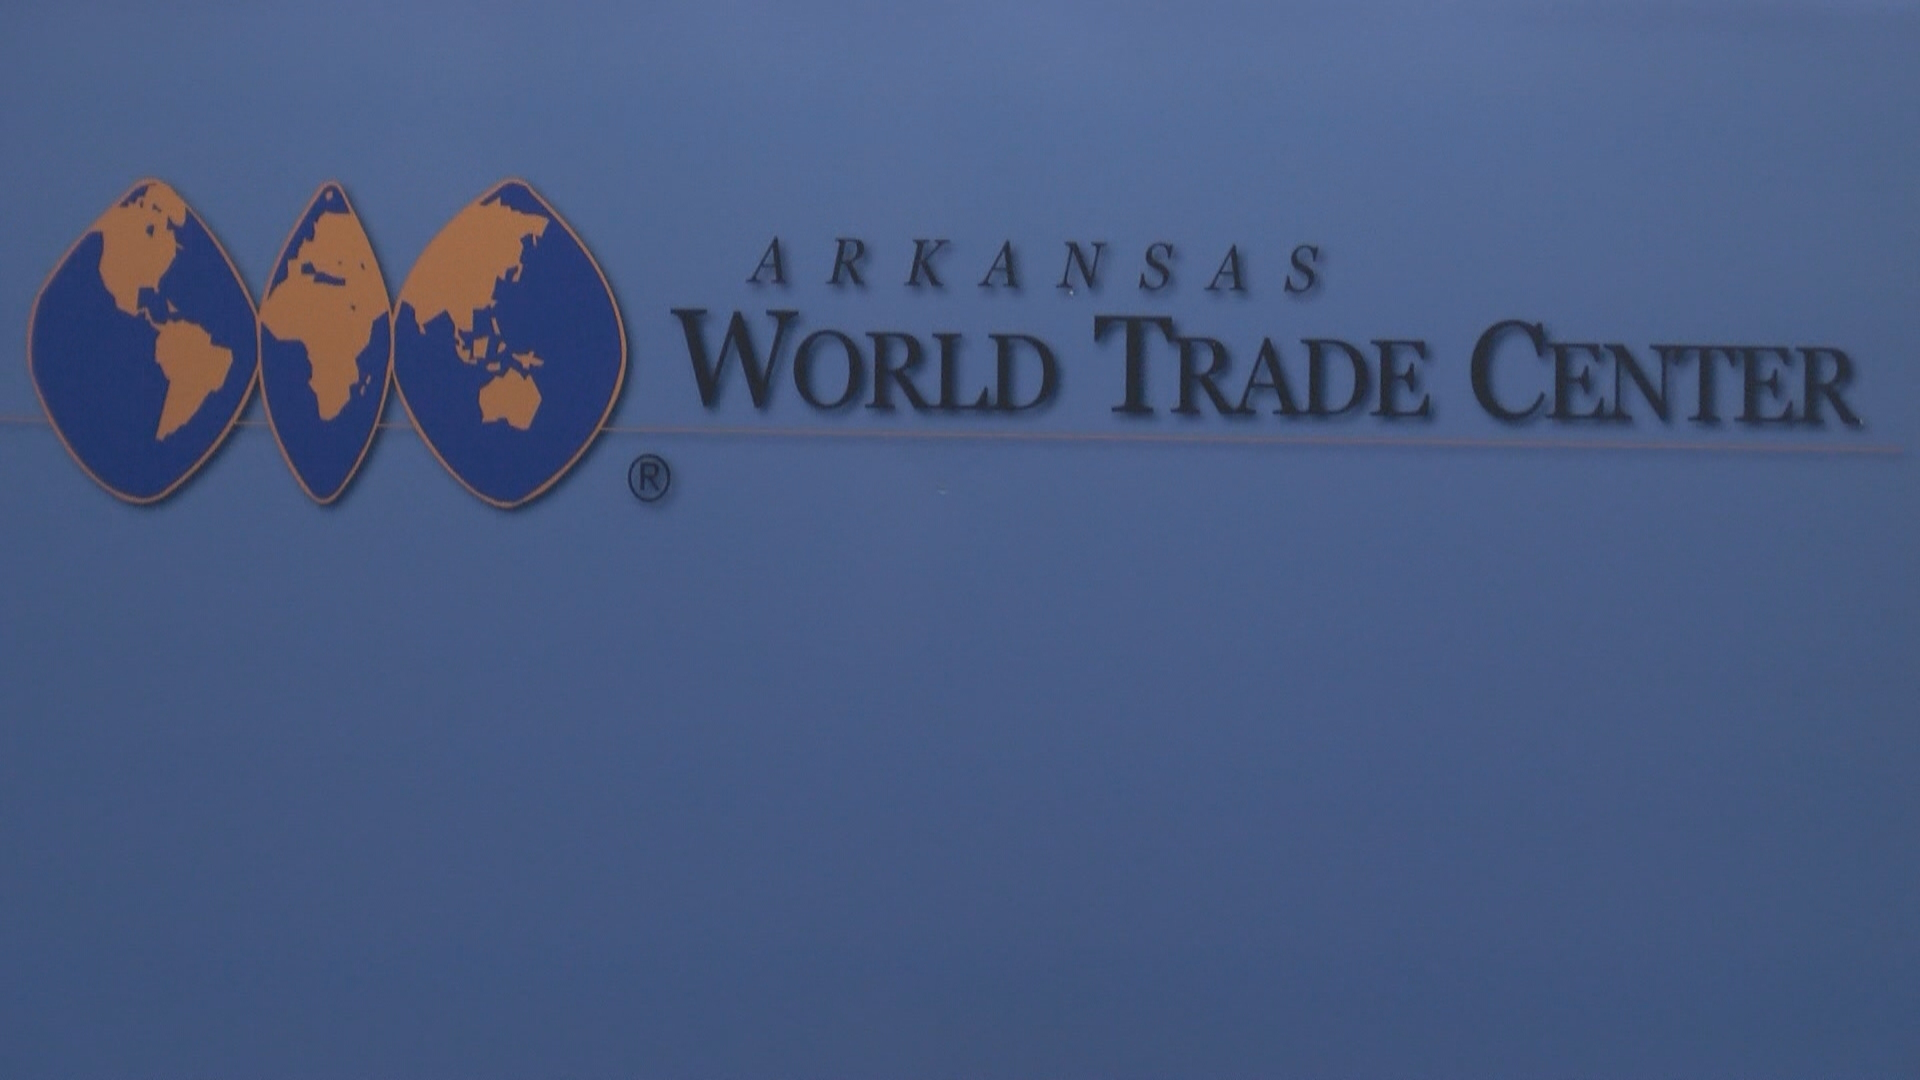 WORLD TRADE CENTER ARKANSAS 2